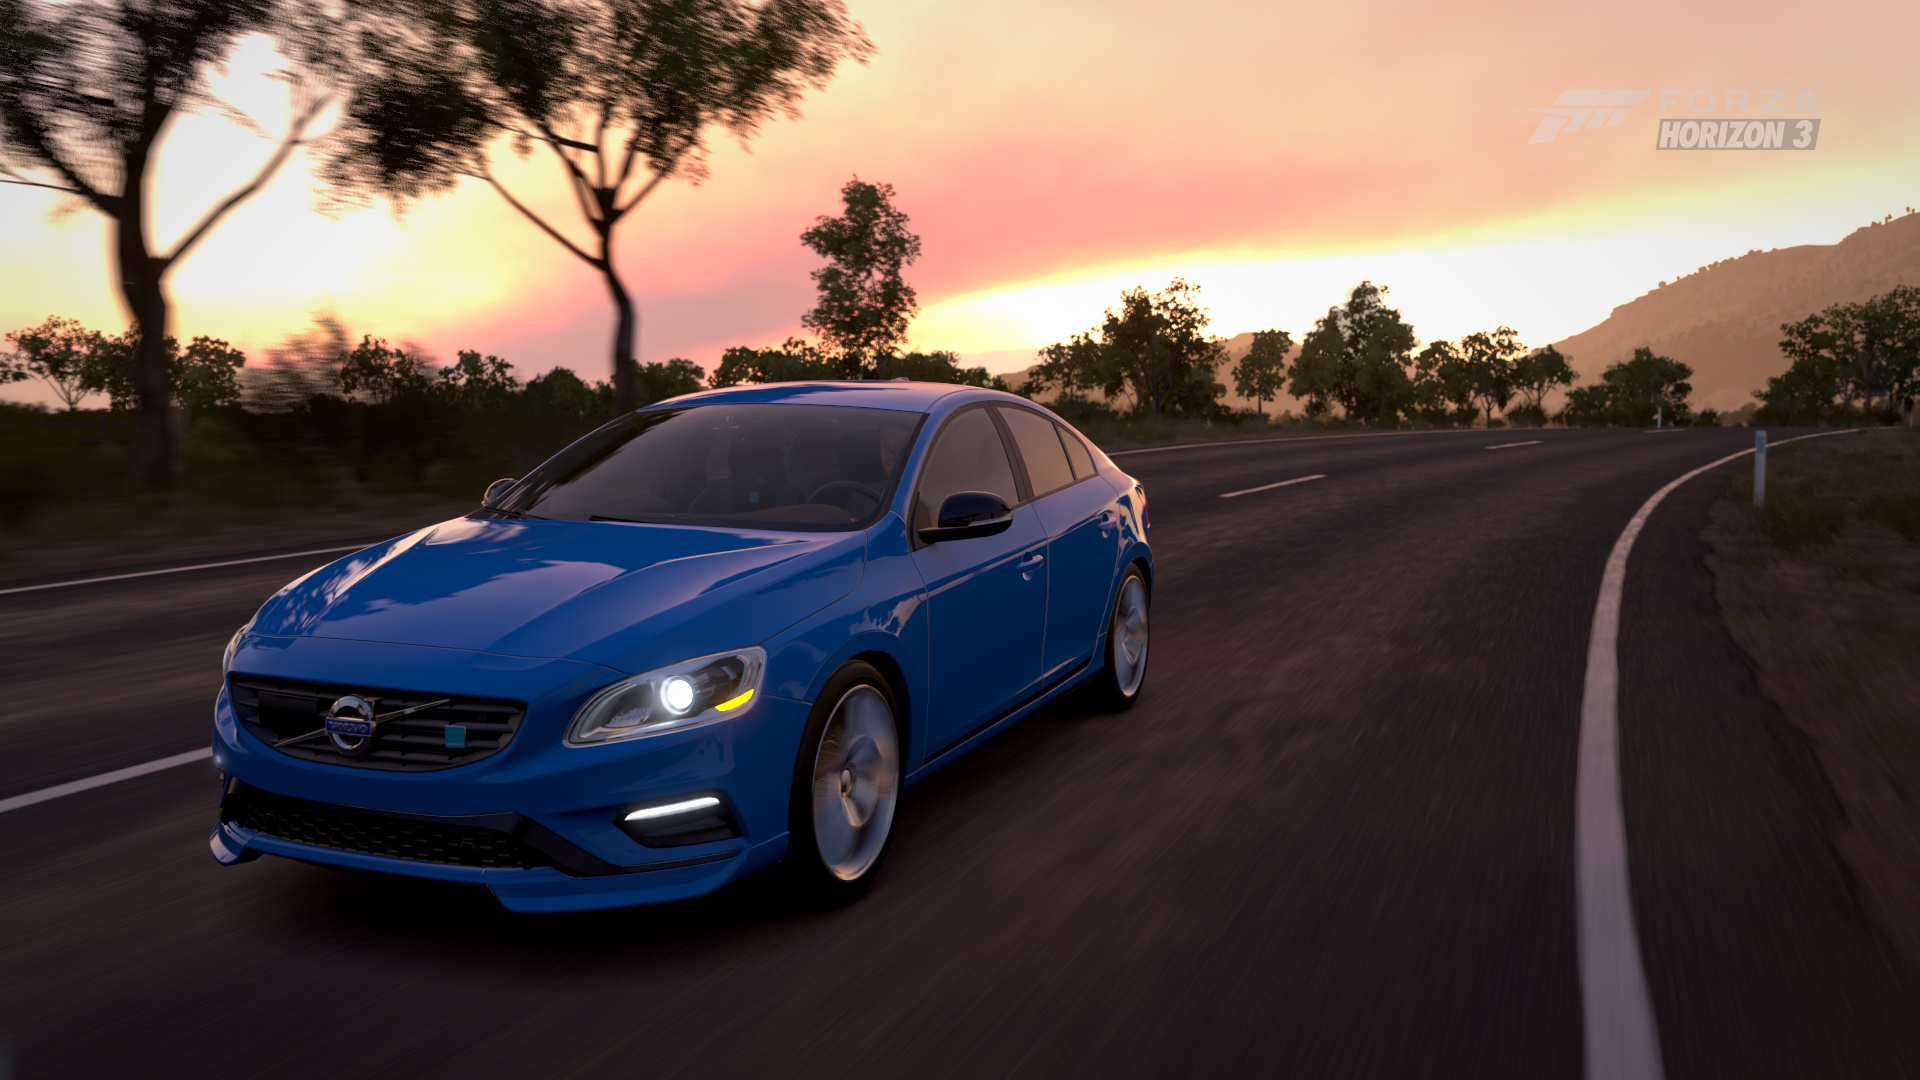 expert of quick and mcaleer dad volvo polestar review the brendan